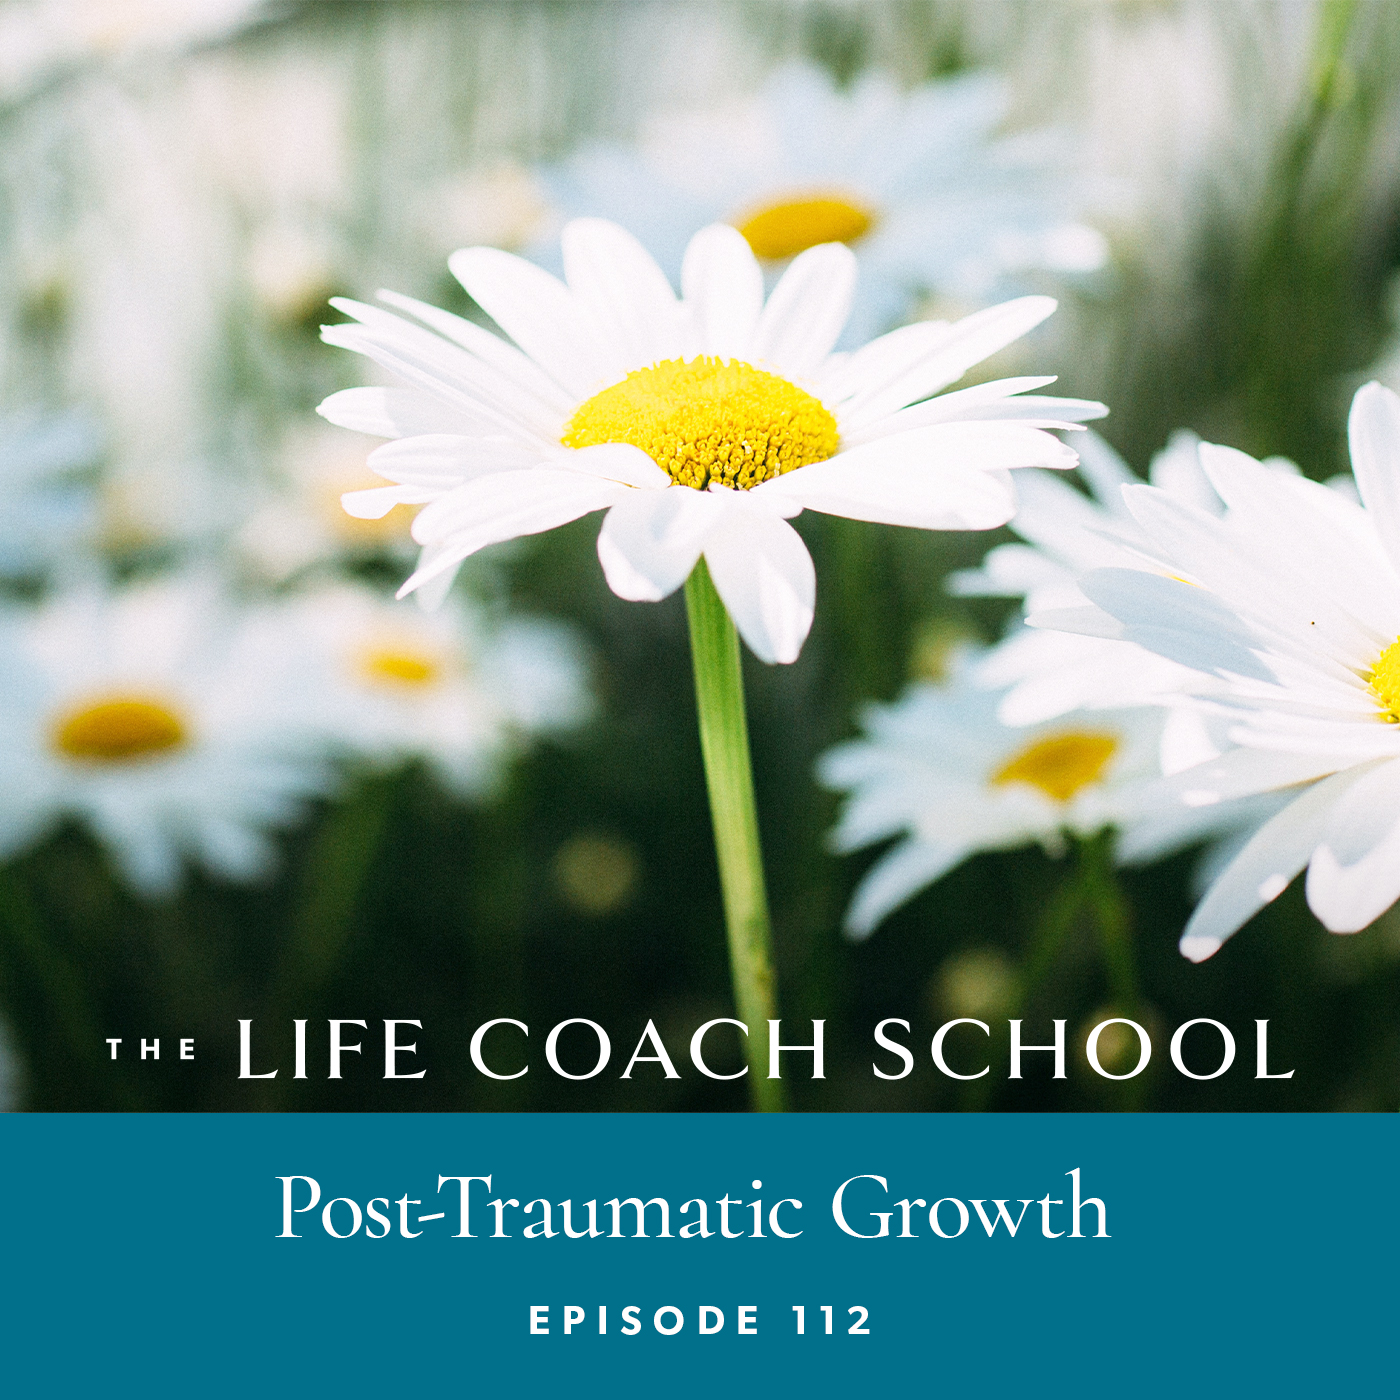 The Life Coach School Podcast with Brooke Castillo | Episode 112 | Post-Traumatic Growth